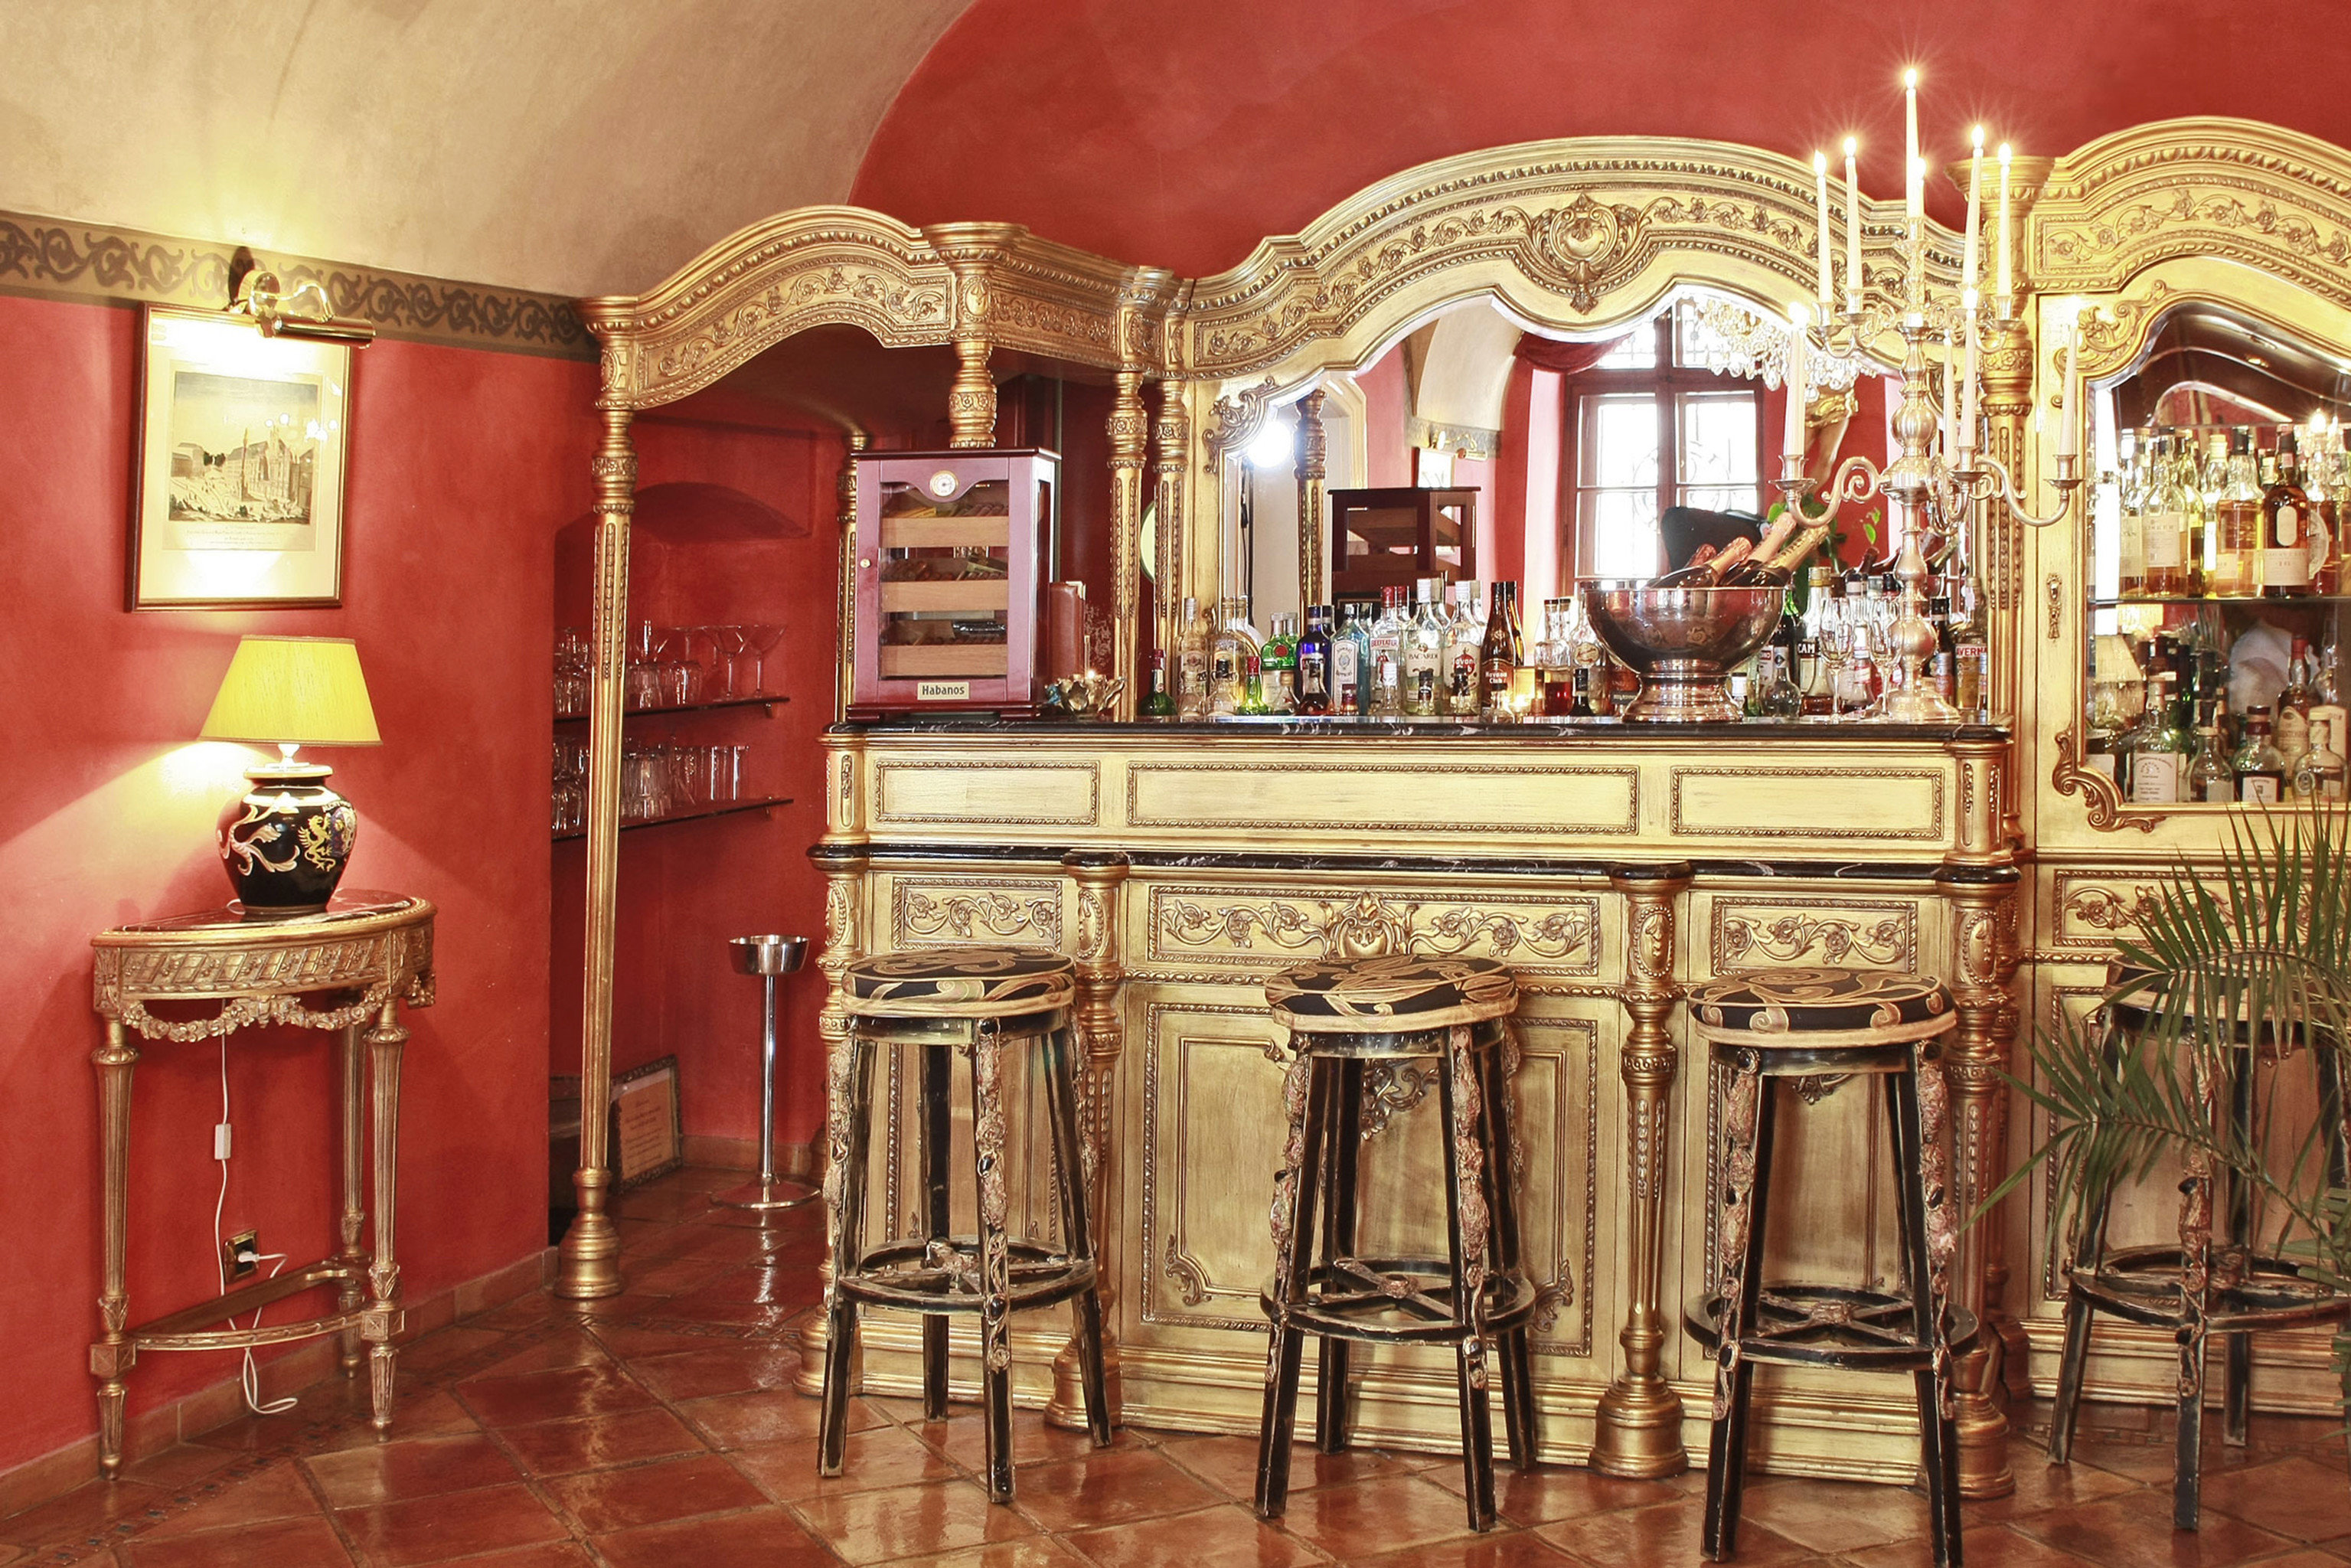 Bar Dining Drink Eat Elegant Historic Luxury ancient history palace wooden synagogue tourist attraction old altar